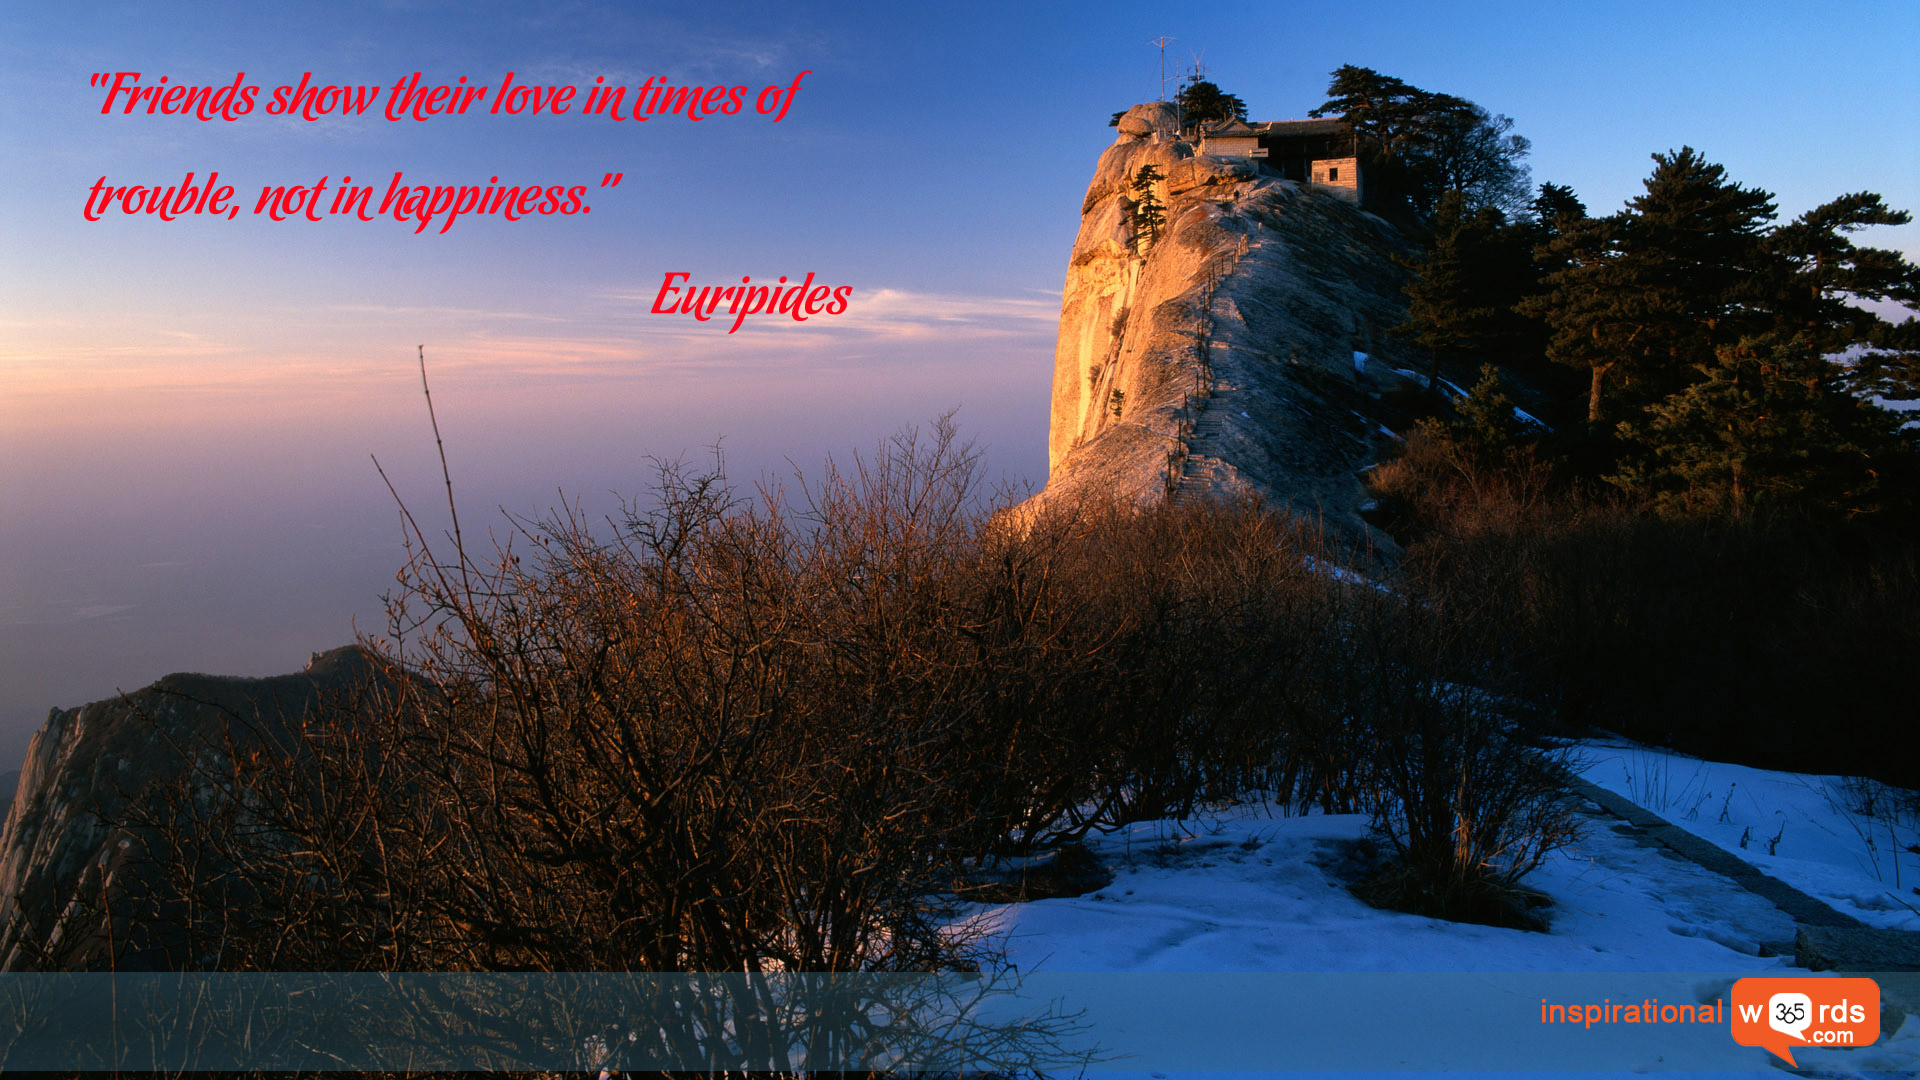 Inspirational Wallpaper Quote by Euripides